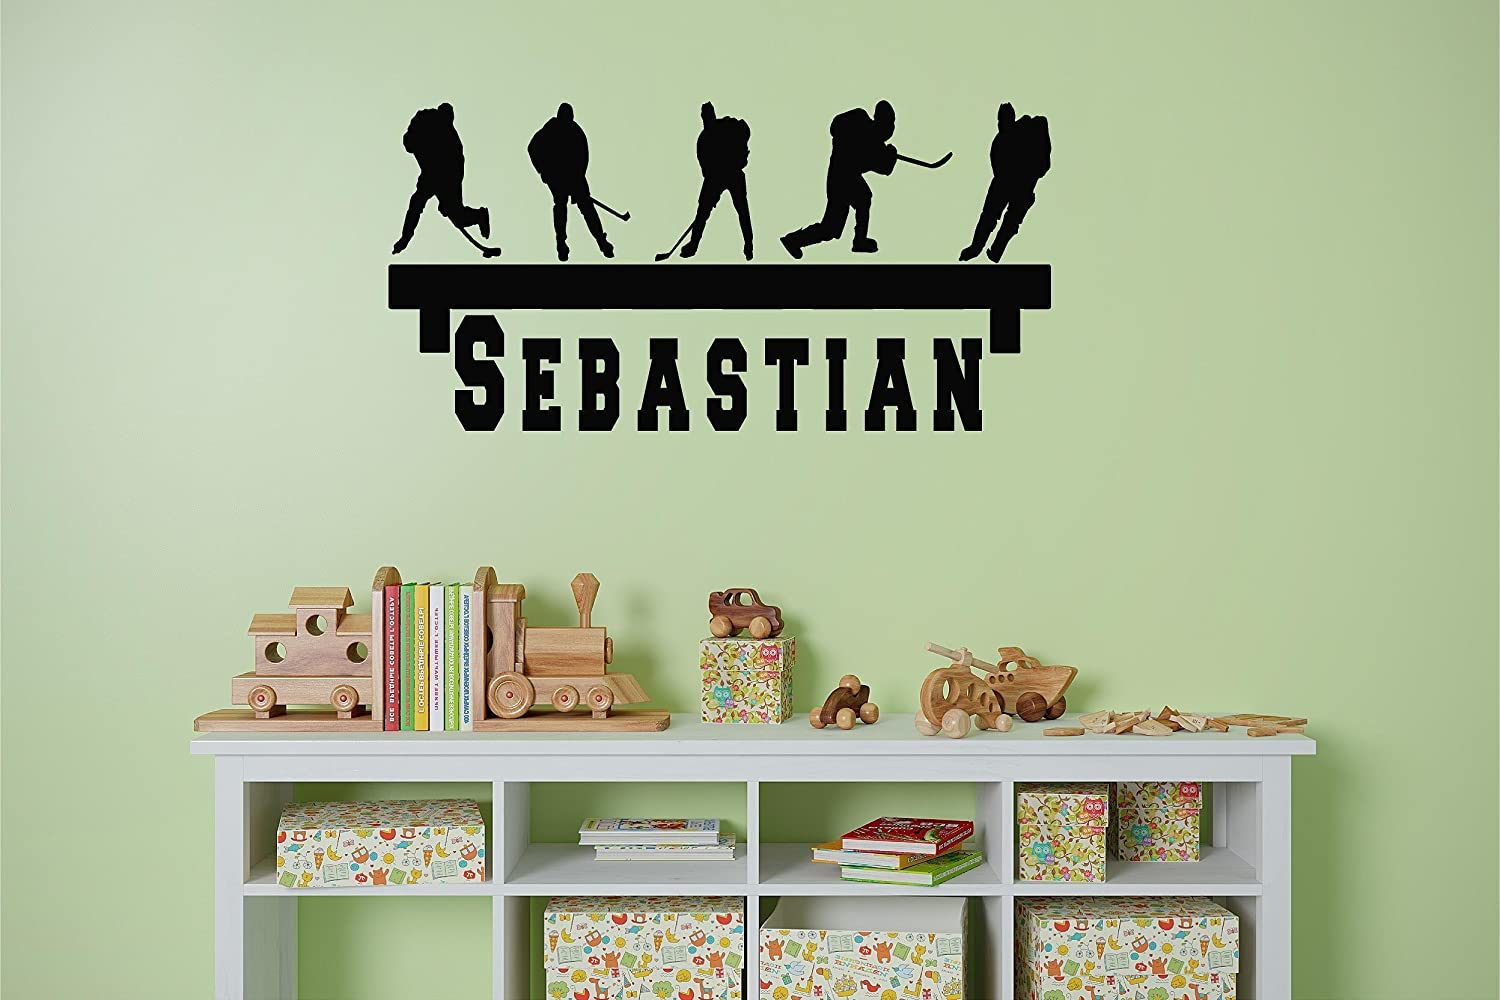 Personalized Name Hockey player Shelf looking customized Kids Name inspiration decal